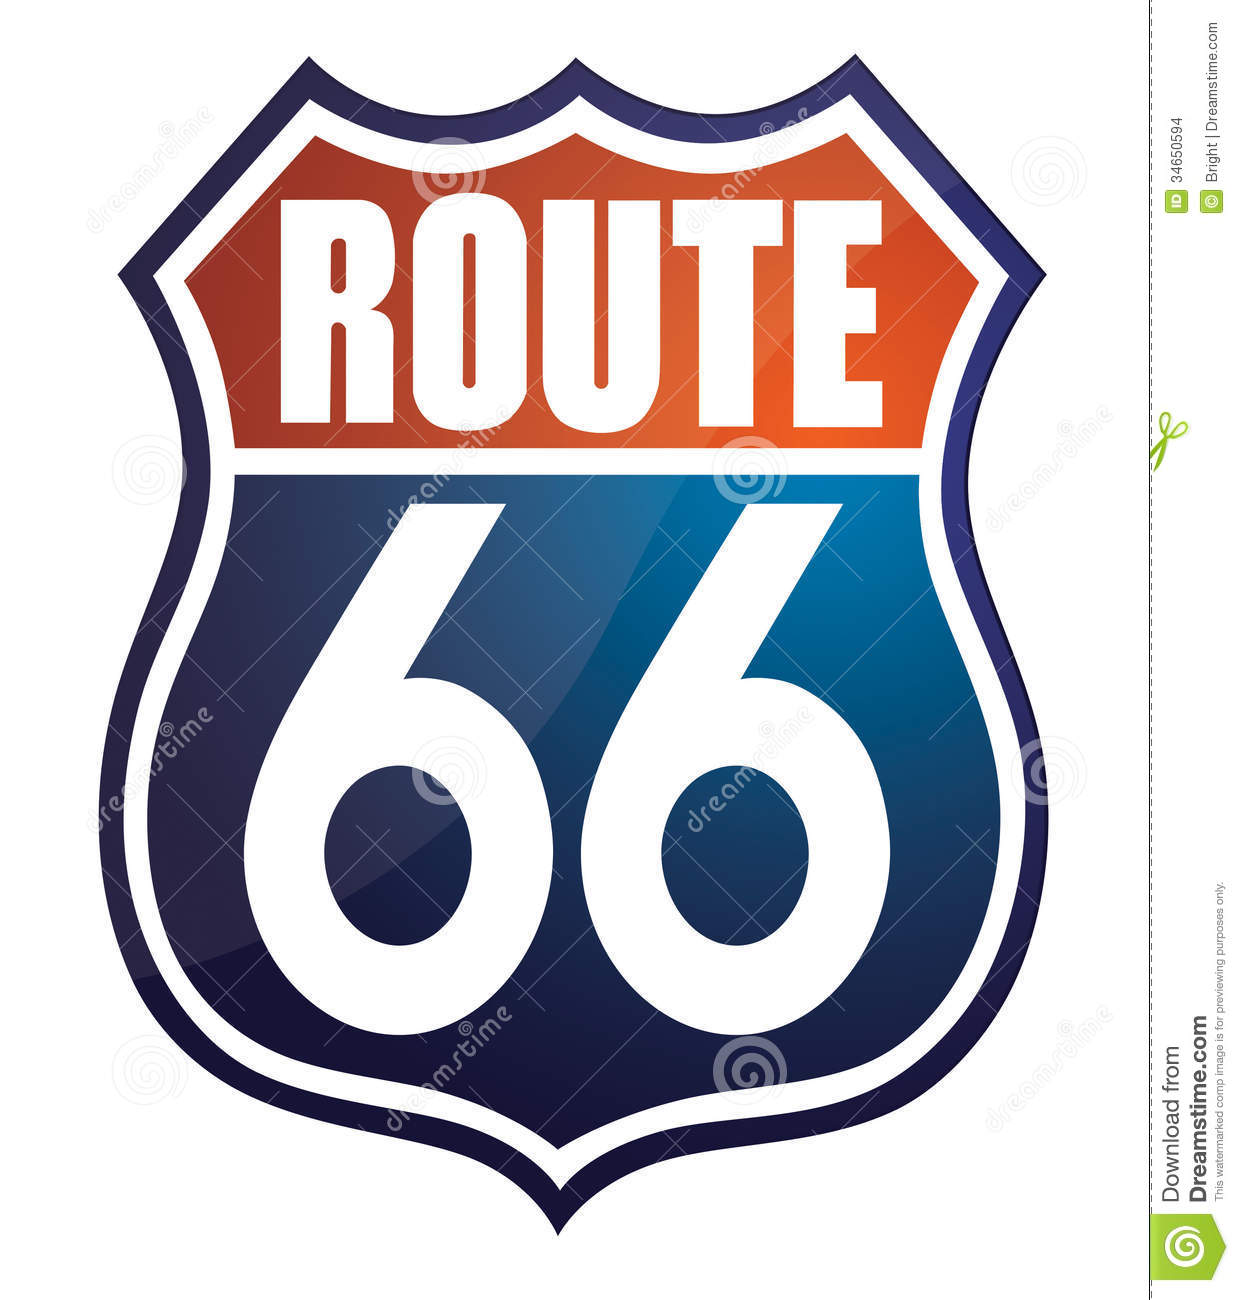 Route 66 #10Jlyg.